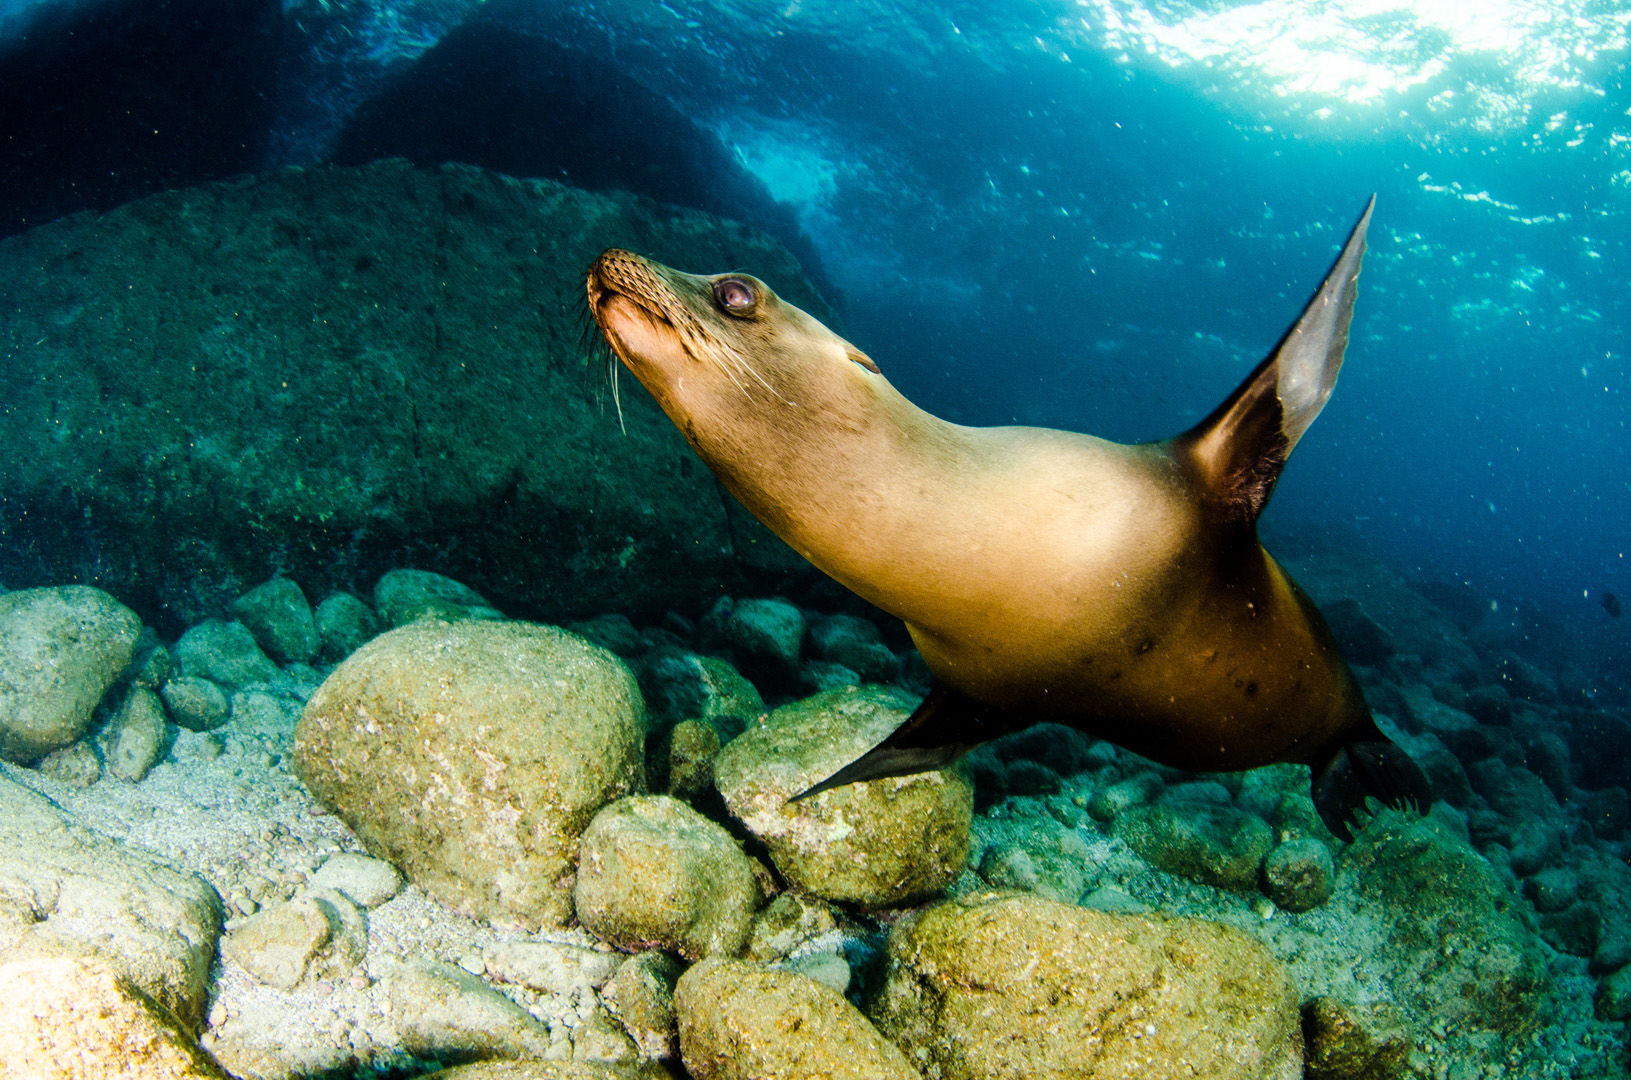 Straddling the rich waters of the Sea of Cortez, the Baja Peninsula is the launching point for big animal encounters like the sea lion